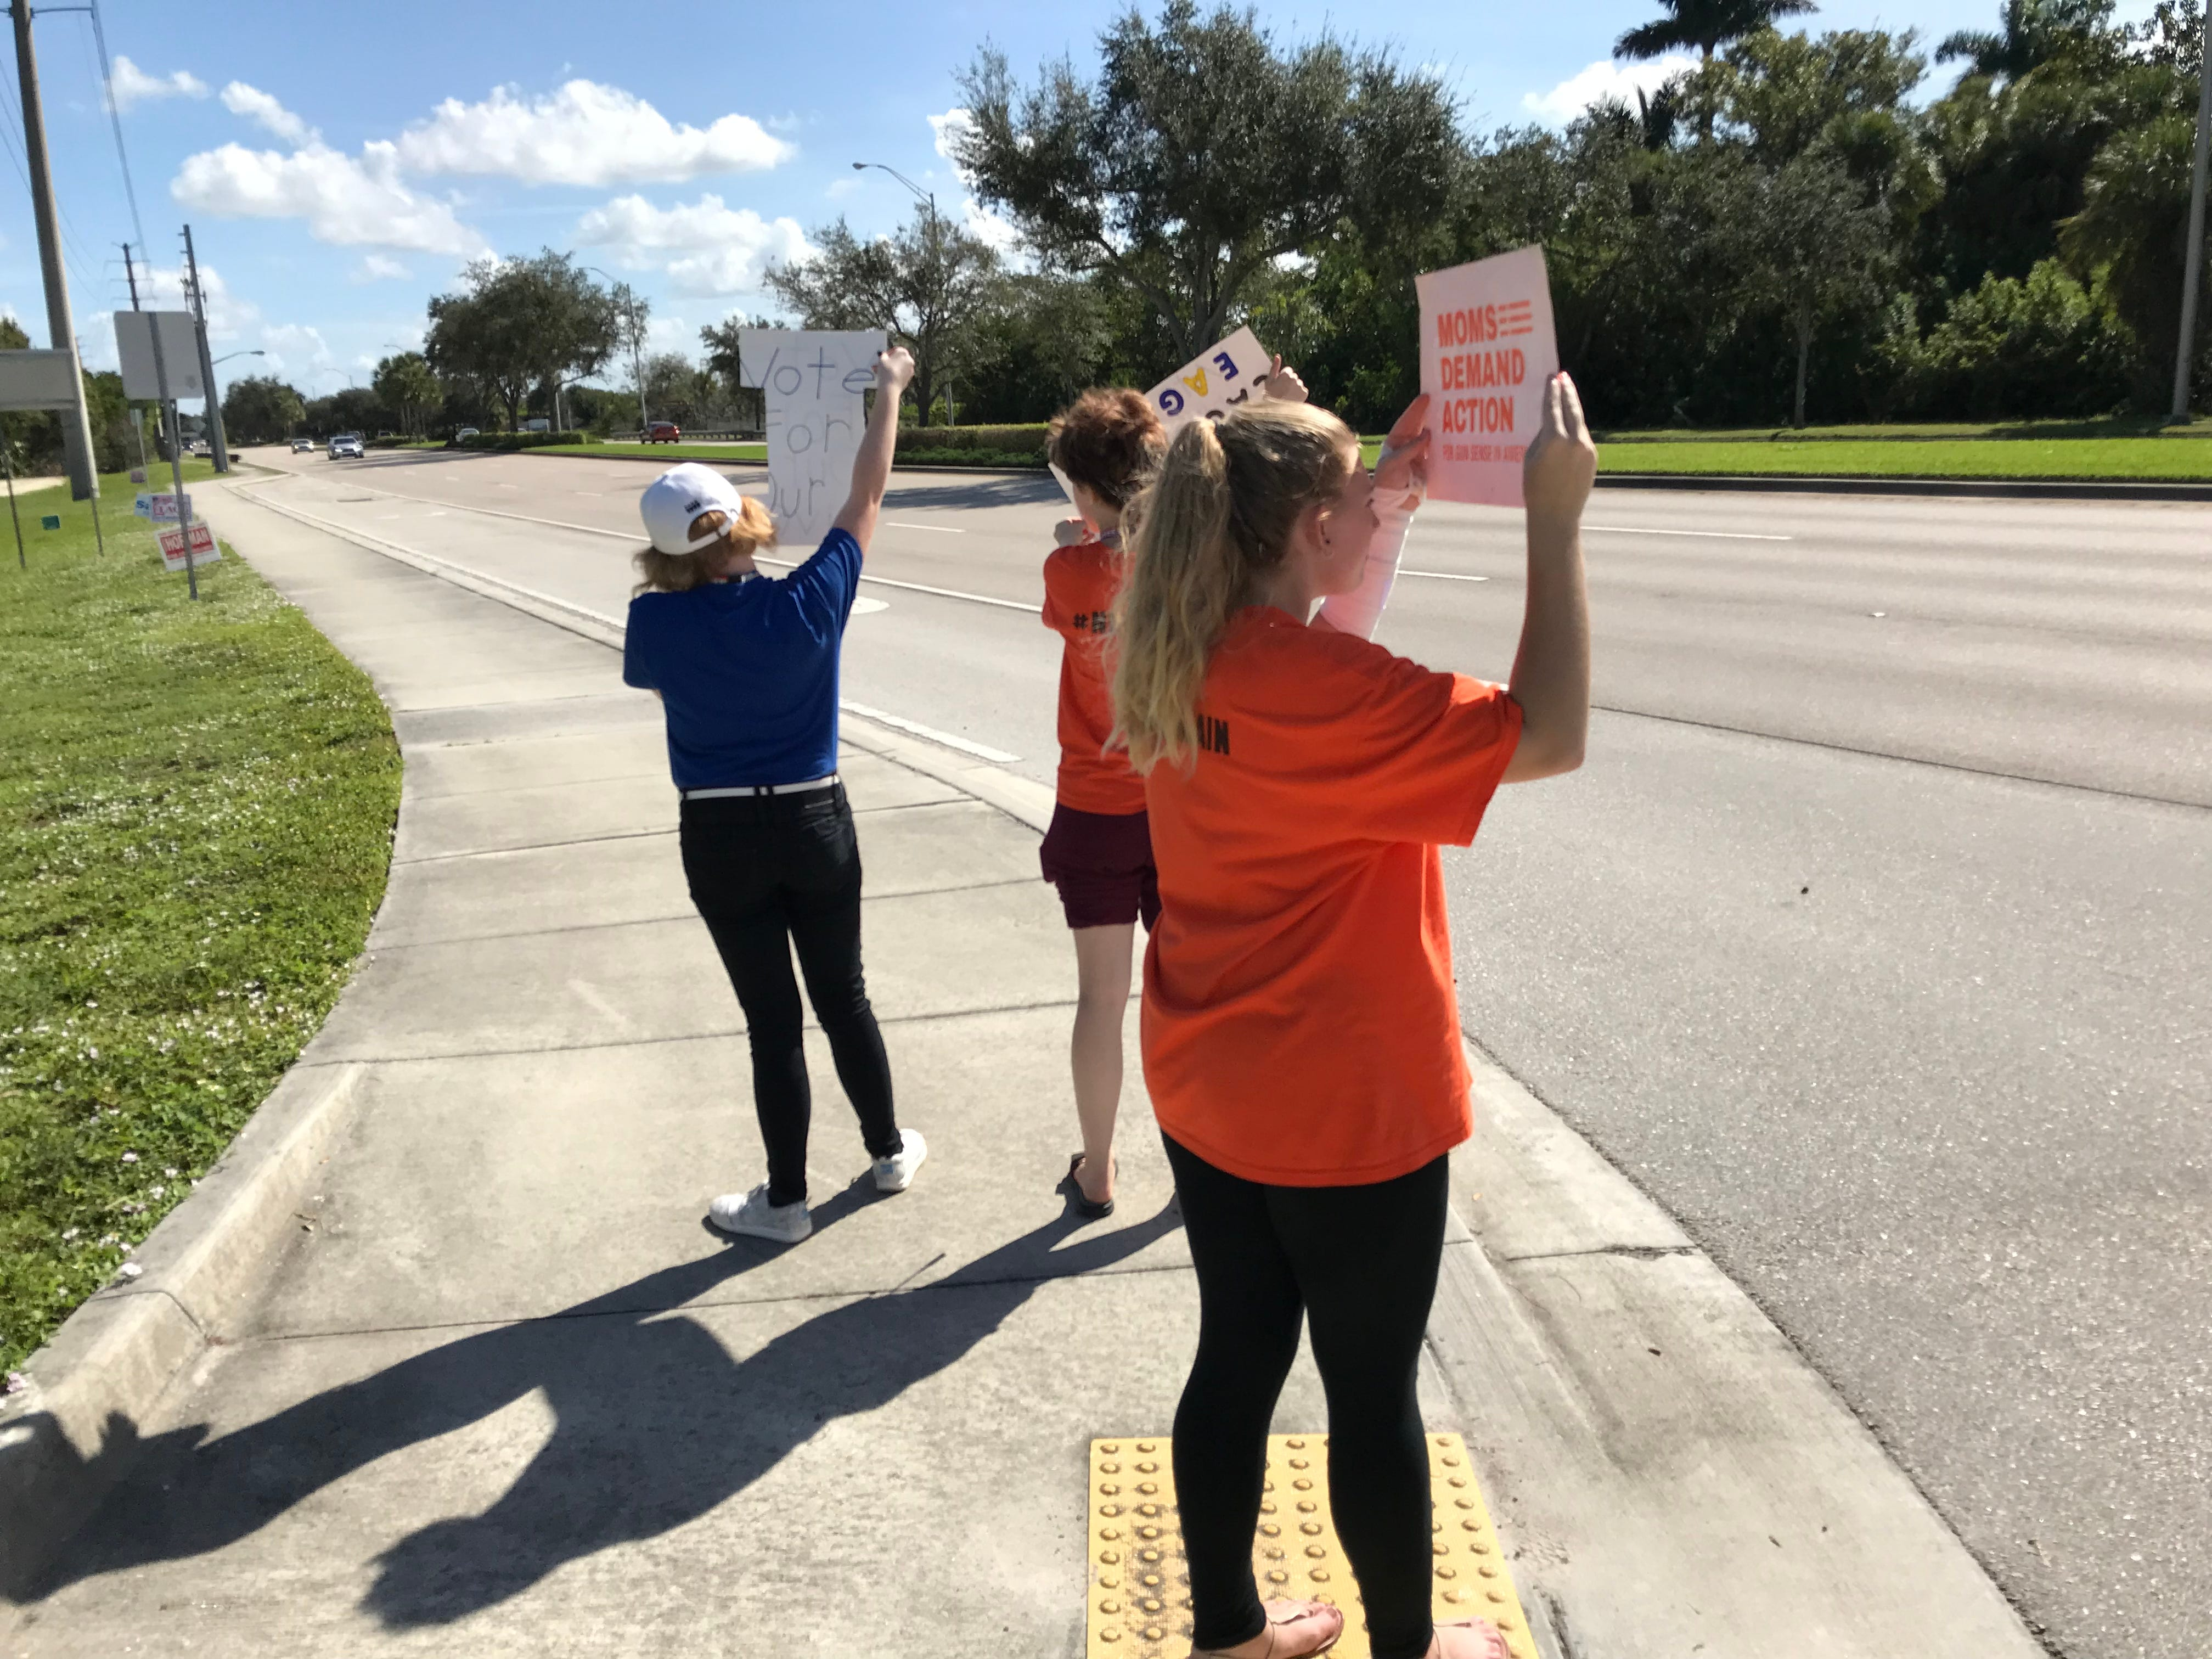 Students from Naples High School hold up signs during an Election Day student walkout at Freedom Park in Naples on Tuesday, Nov. 6, 2018.